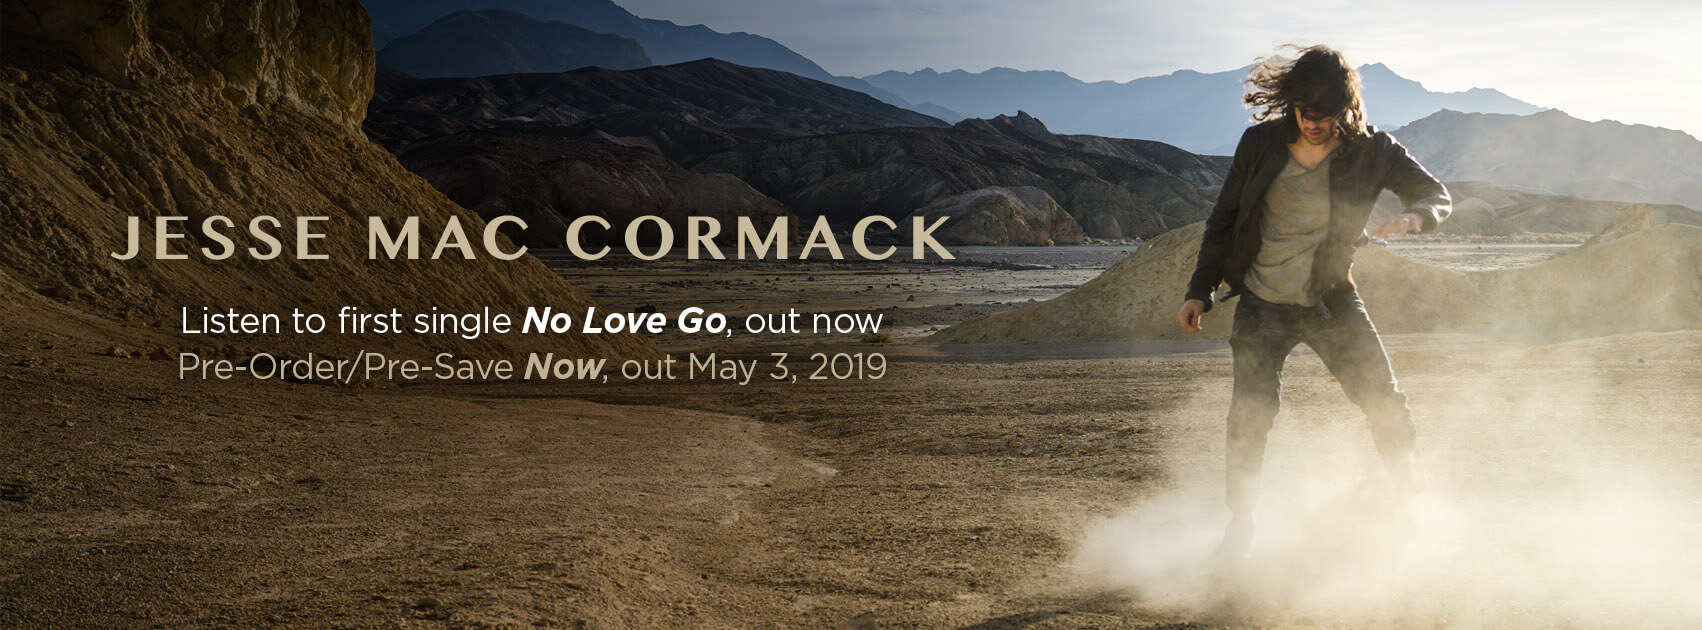 Jesse Mac Cormack - no love go - now